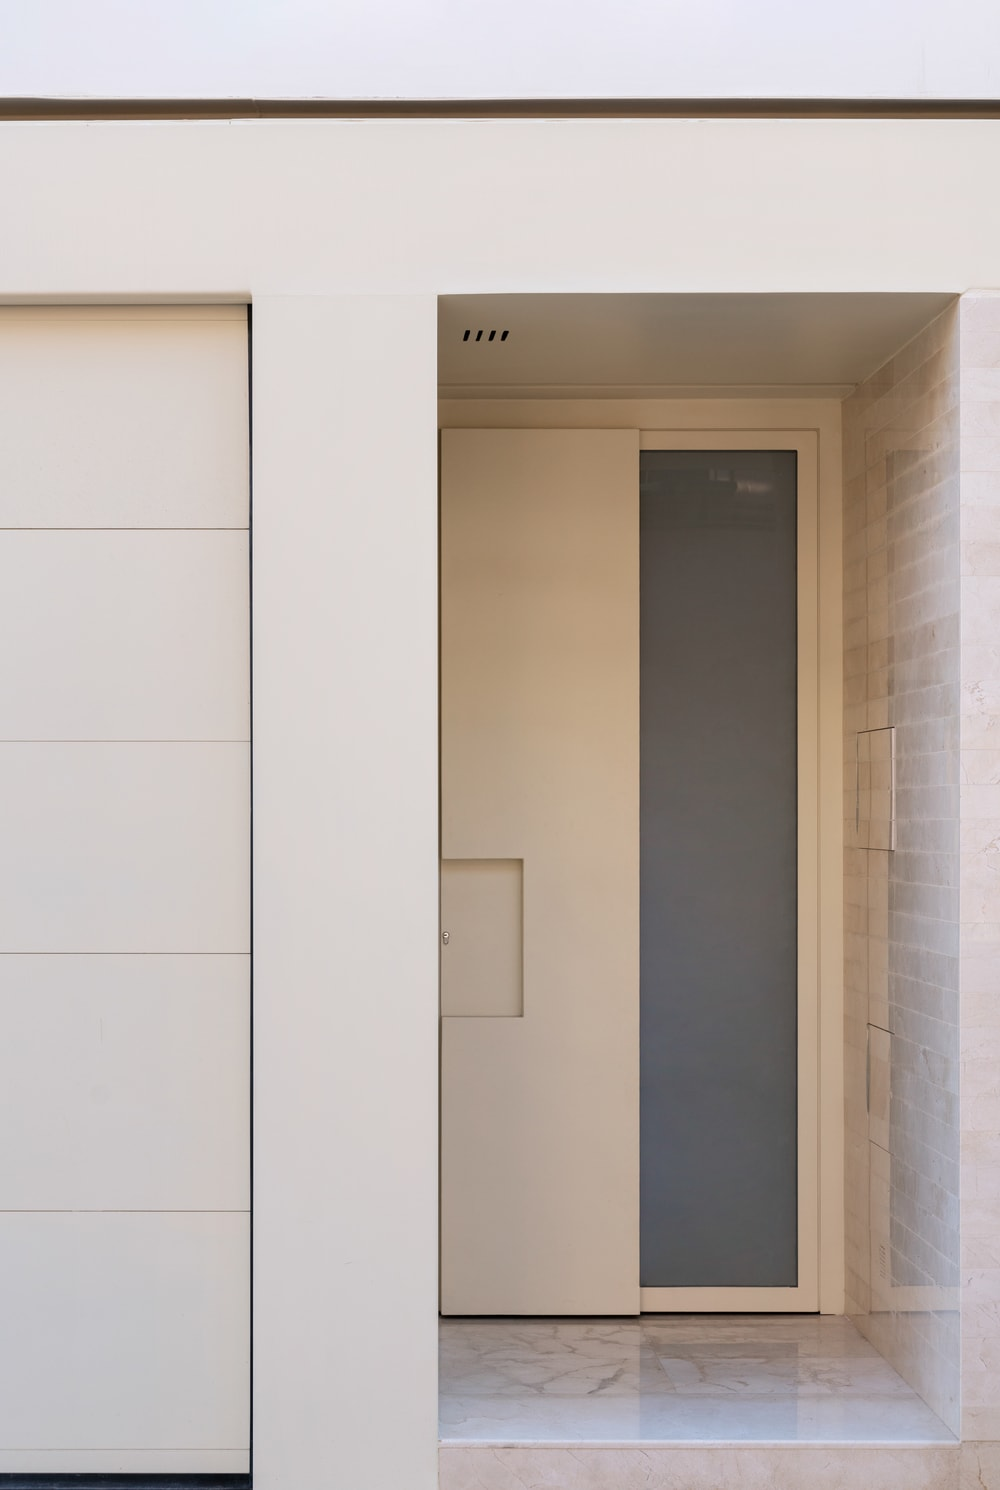 The main door has a light wooden tone adorned with a tall and thin glass panel on the side.